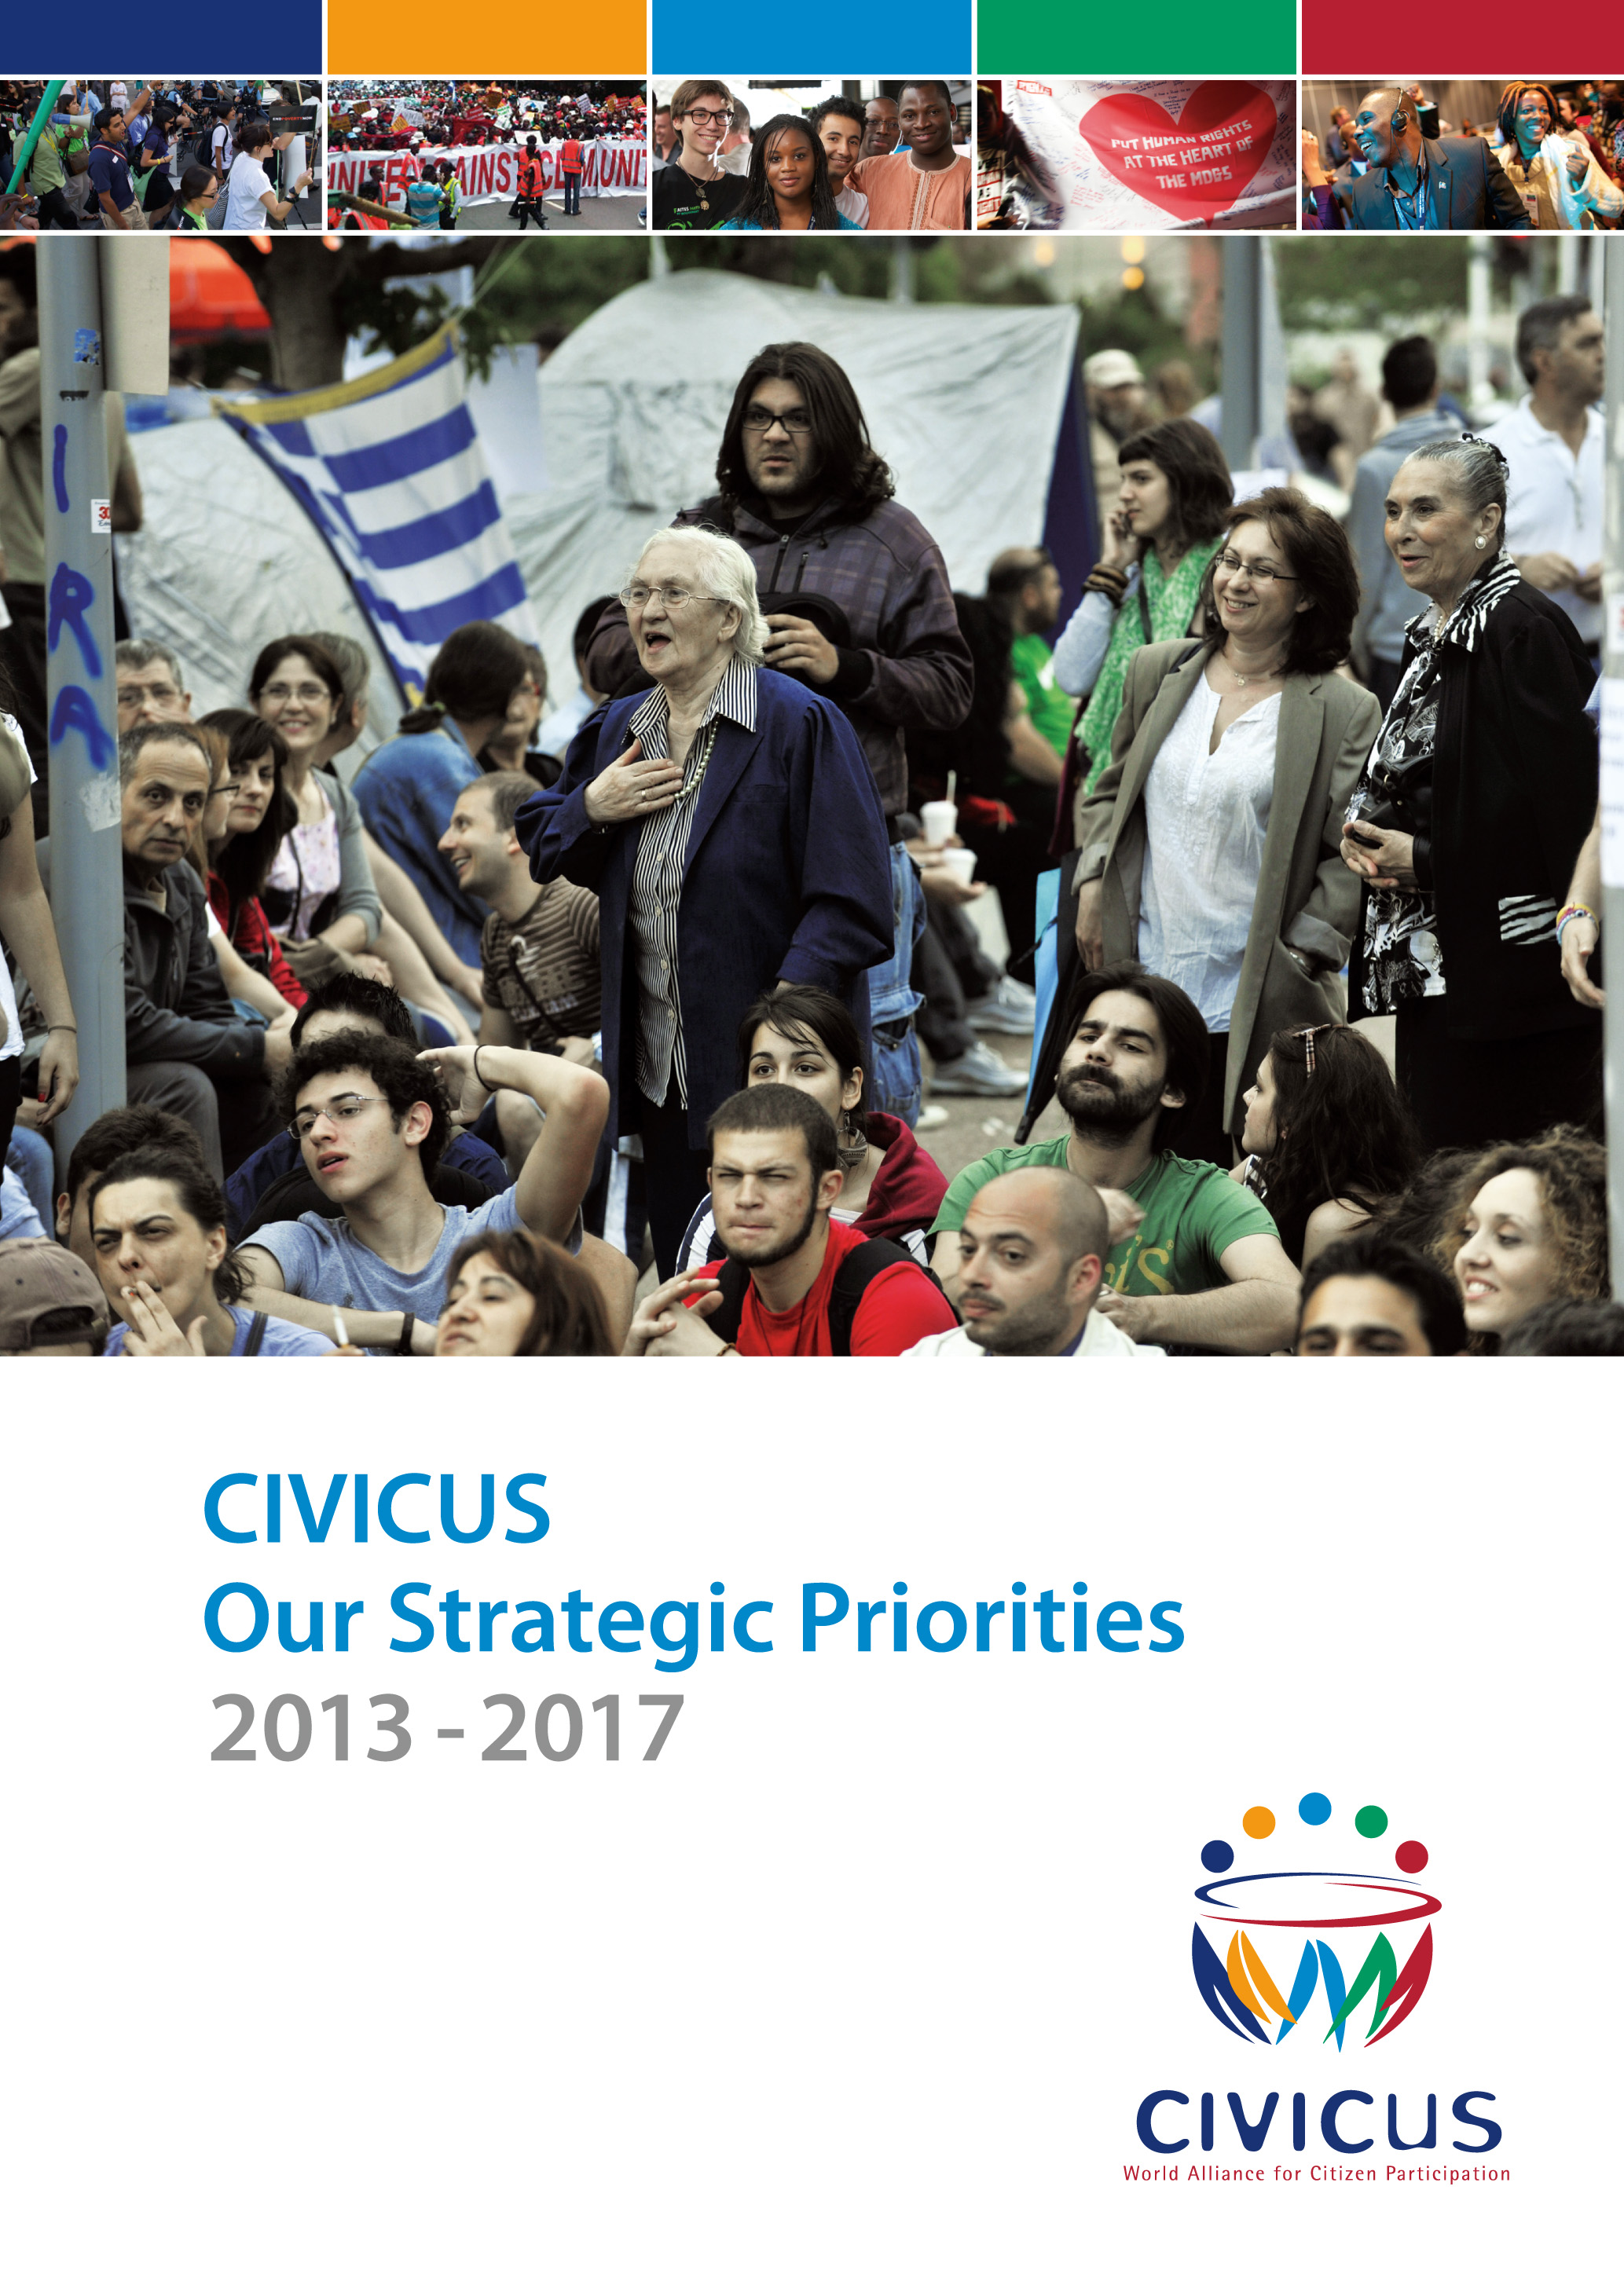 CIVICUS Strategic Priorities